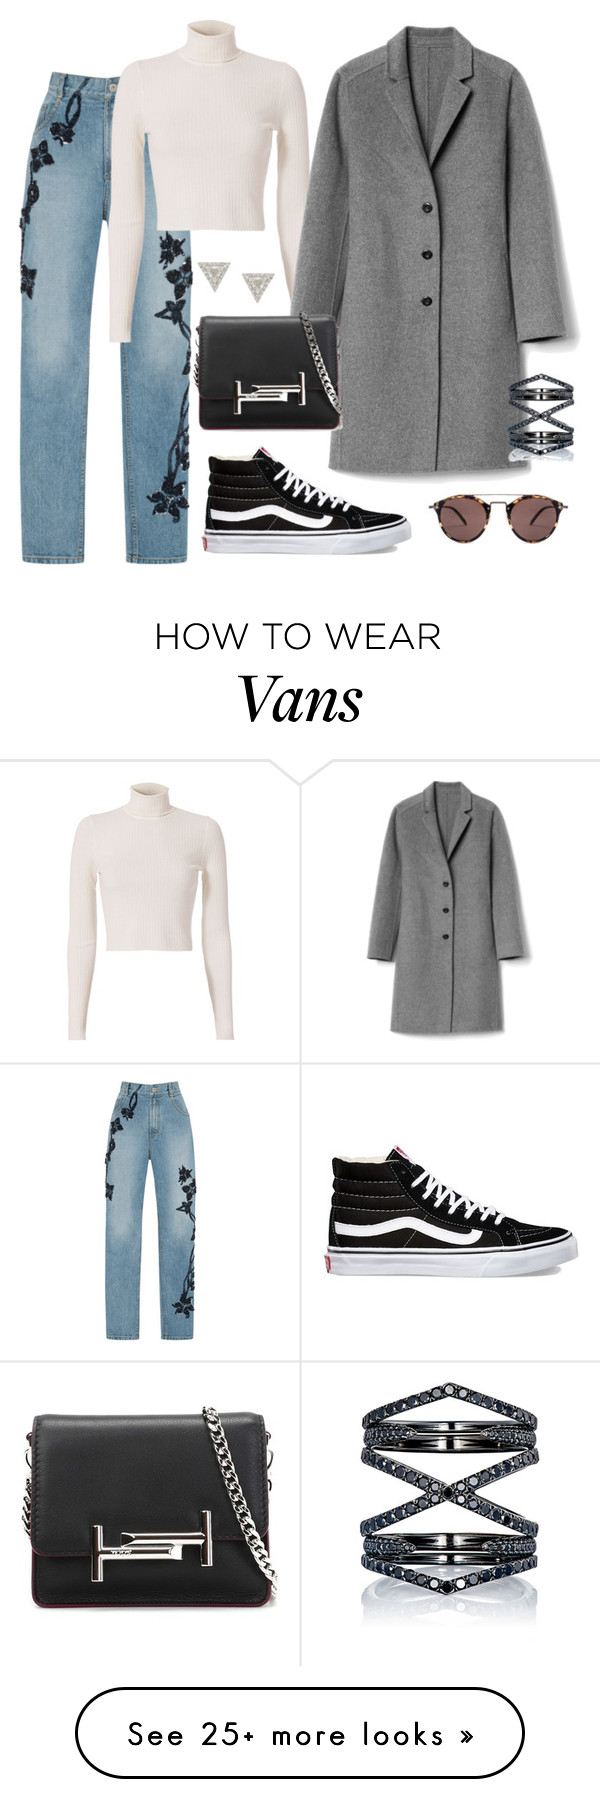 """""""#555"""" by tubbie on Polyvore featuring Jonathan Simkhai, Lizzie Mandler, A.L.C., Gap, Oliver Peoples, Tod's, Eva Fehren and Vans"""